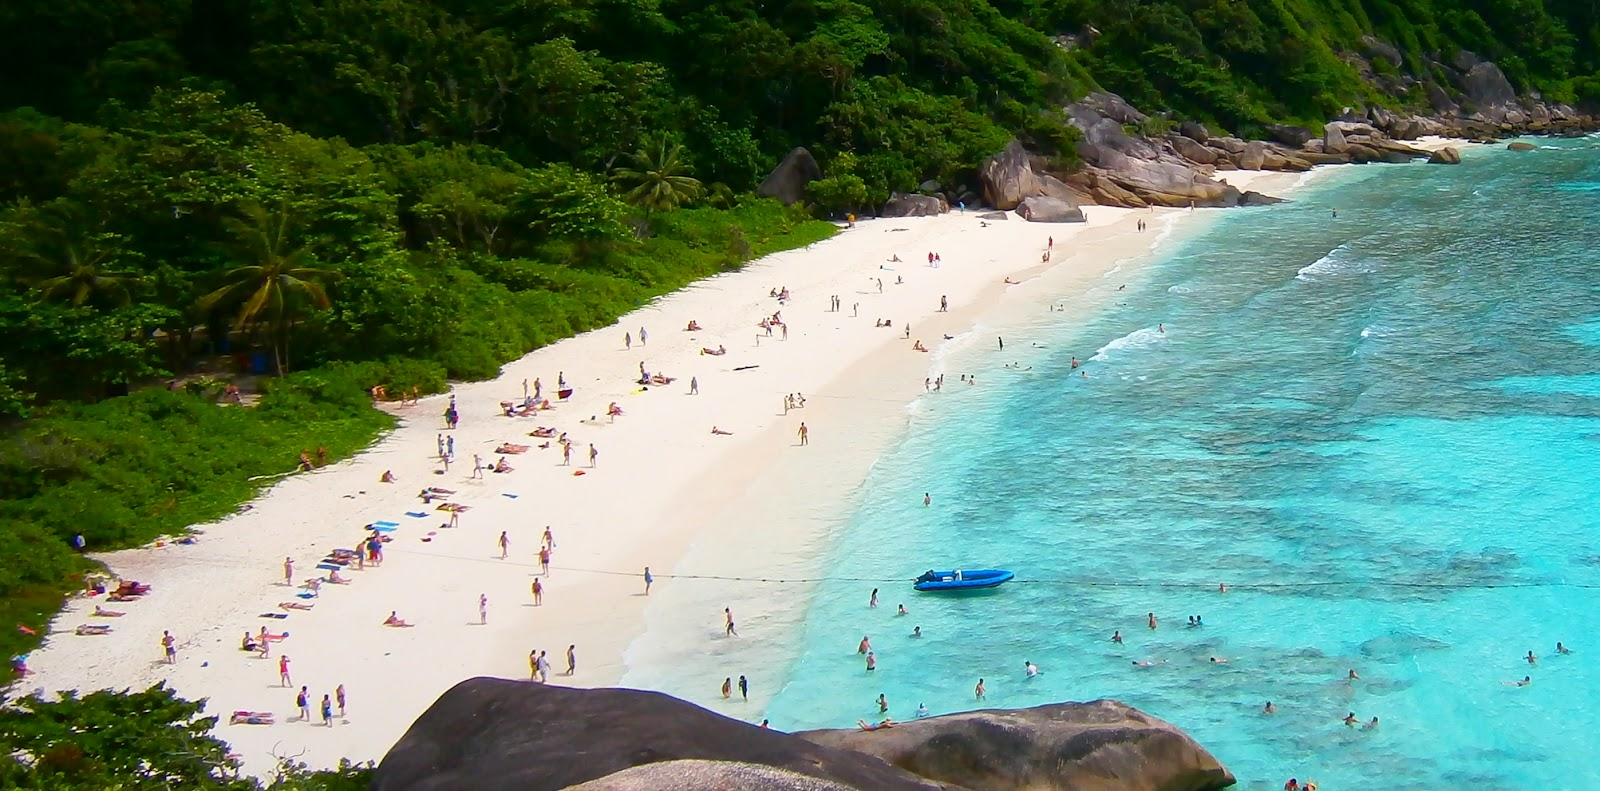 Tezzas Beaches and Islands Similan Islands